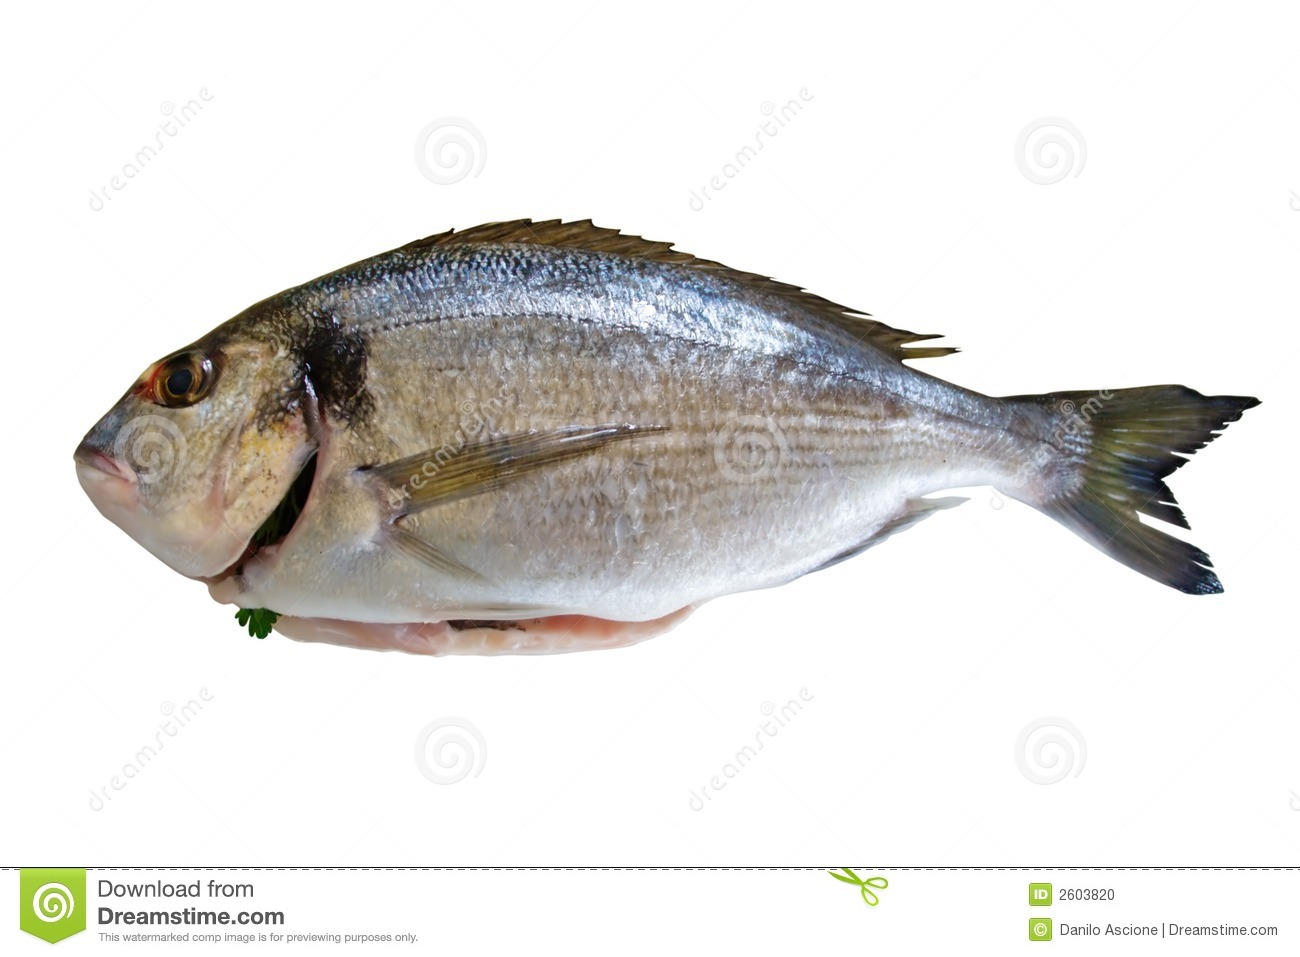 Dorada fish stock photo image of caught animal dorada for Image of fish